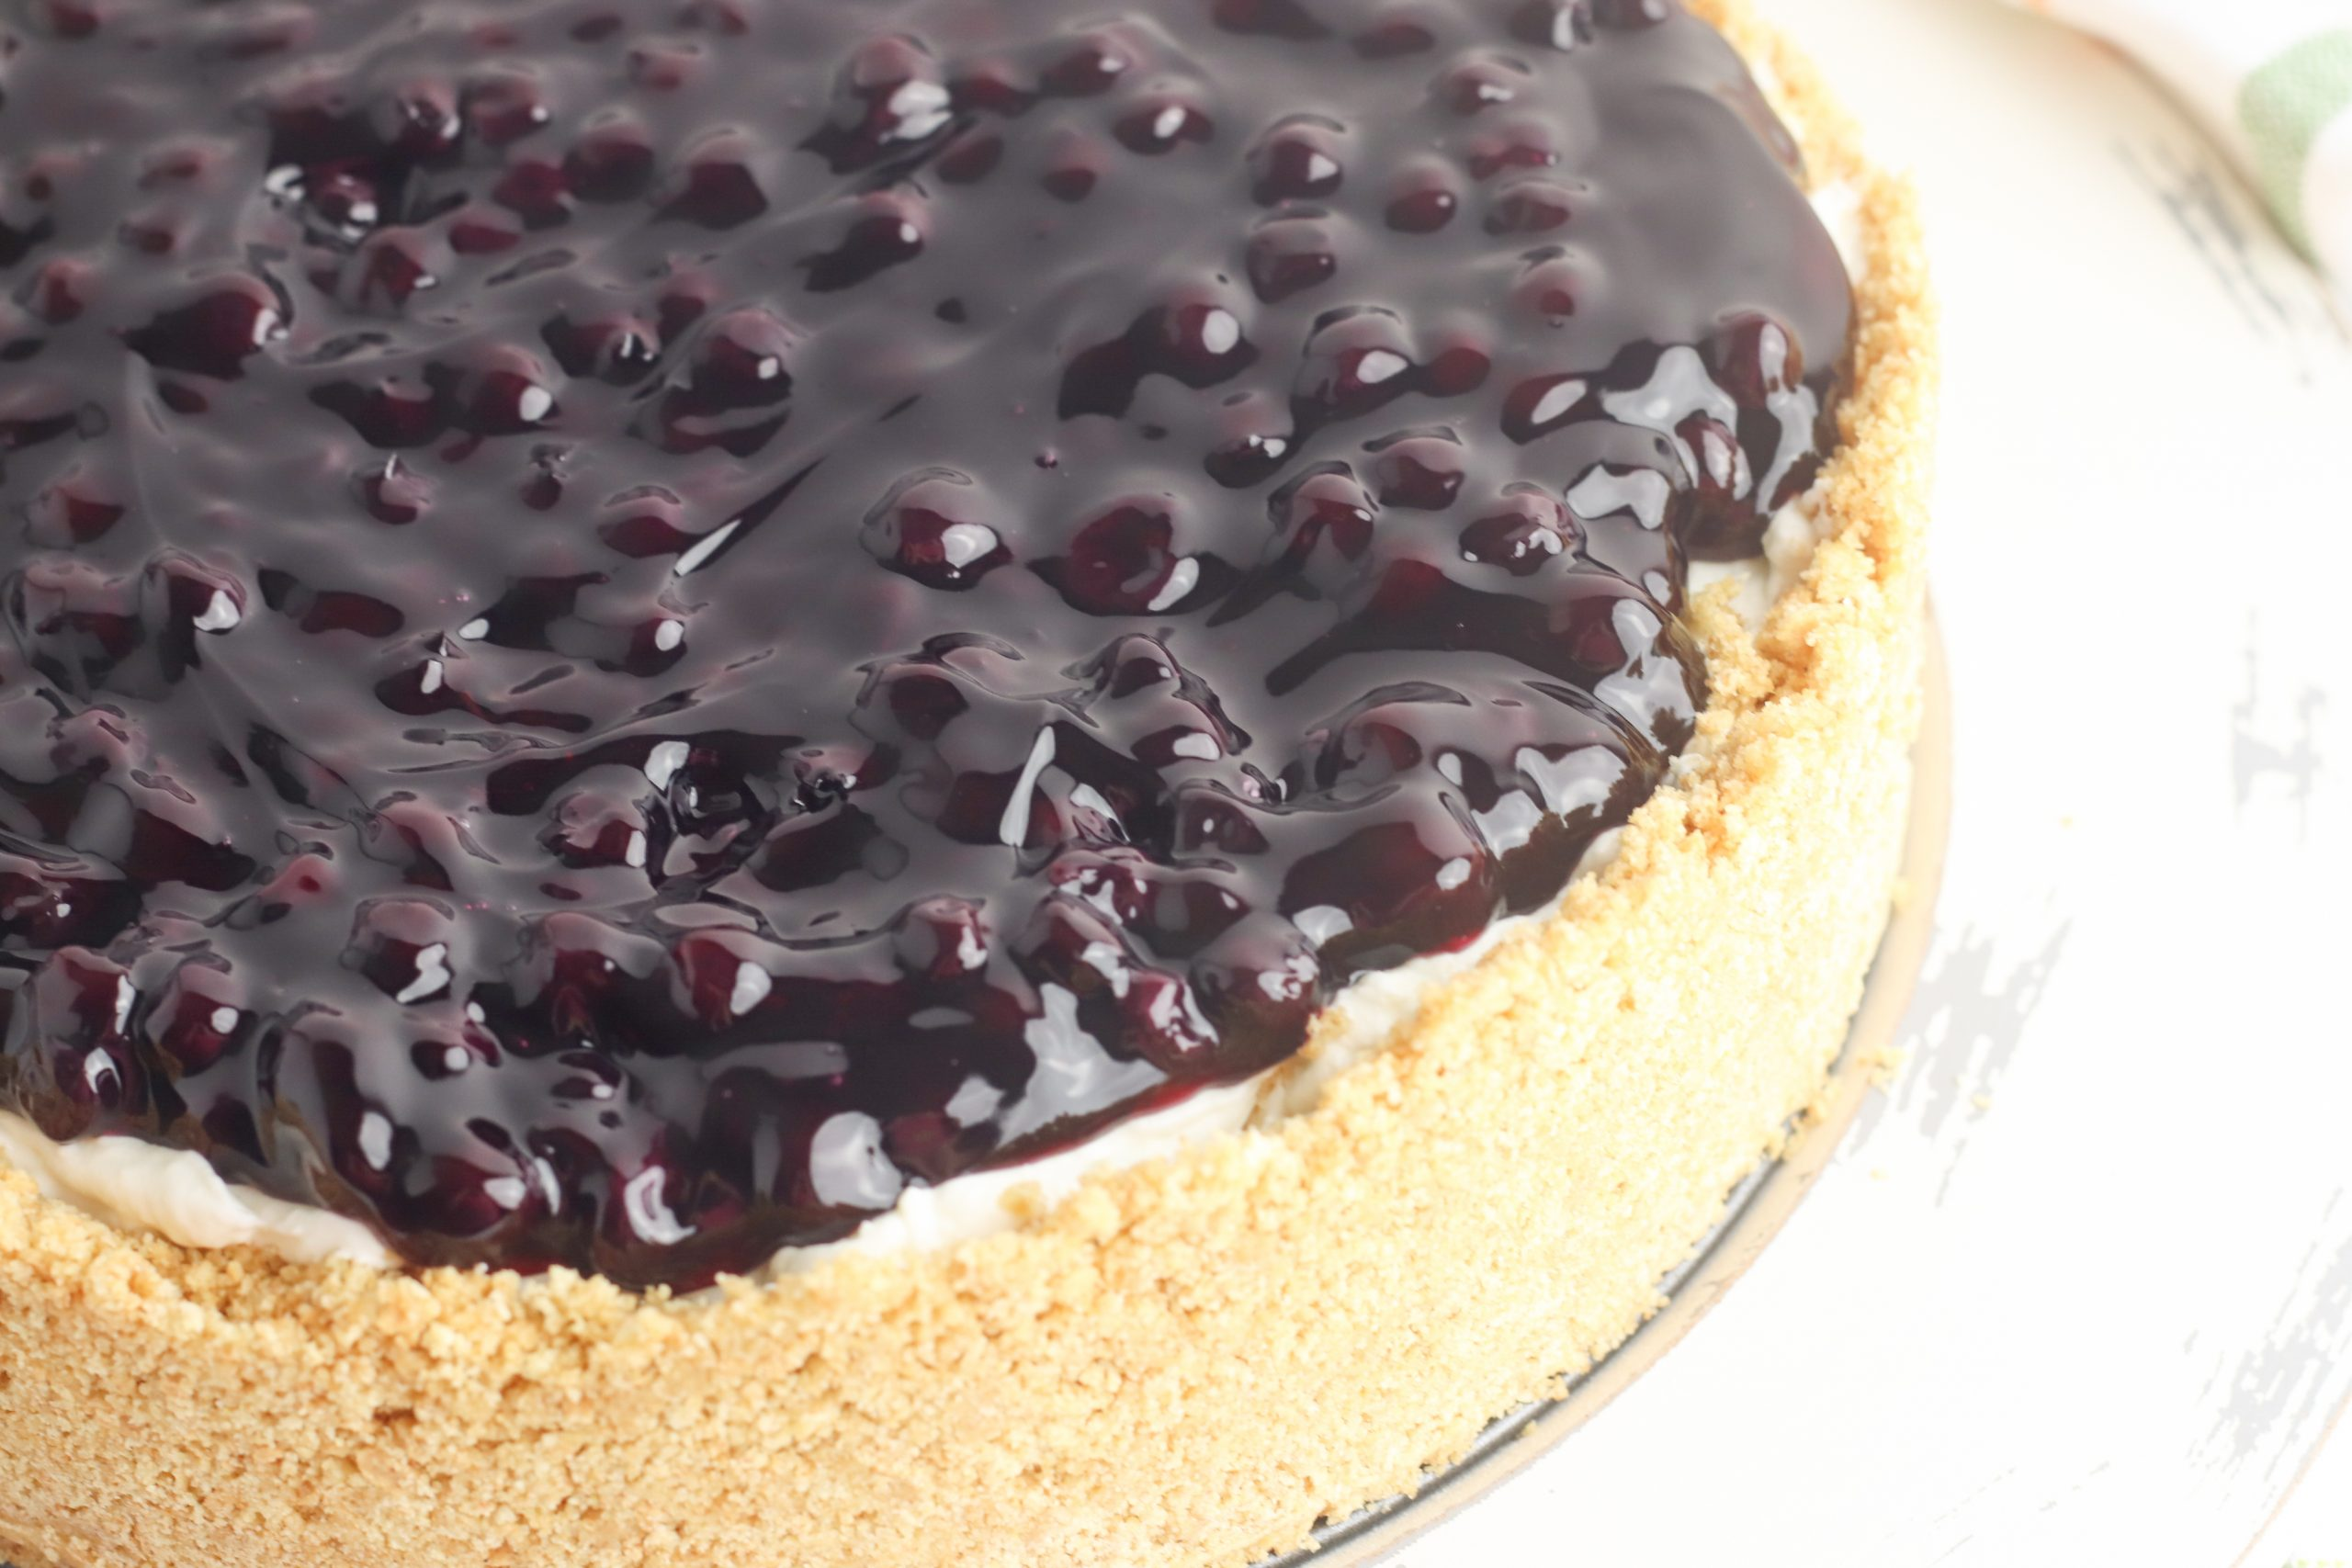 Blueberry no bake Cheesecake Recipe sitting on a platter waiting to be served for dessert.